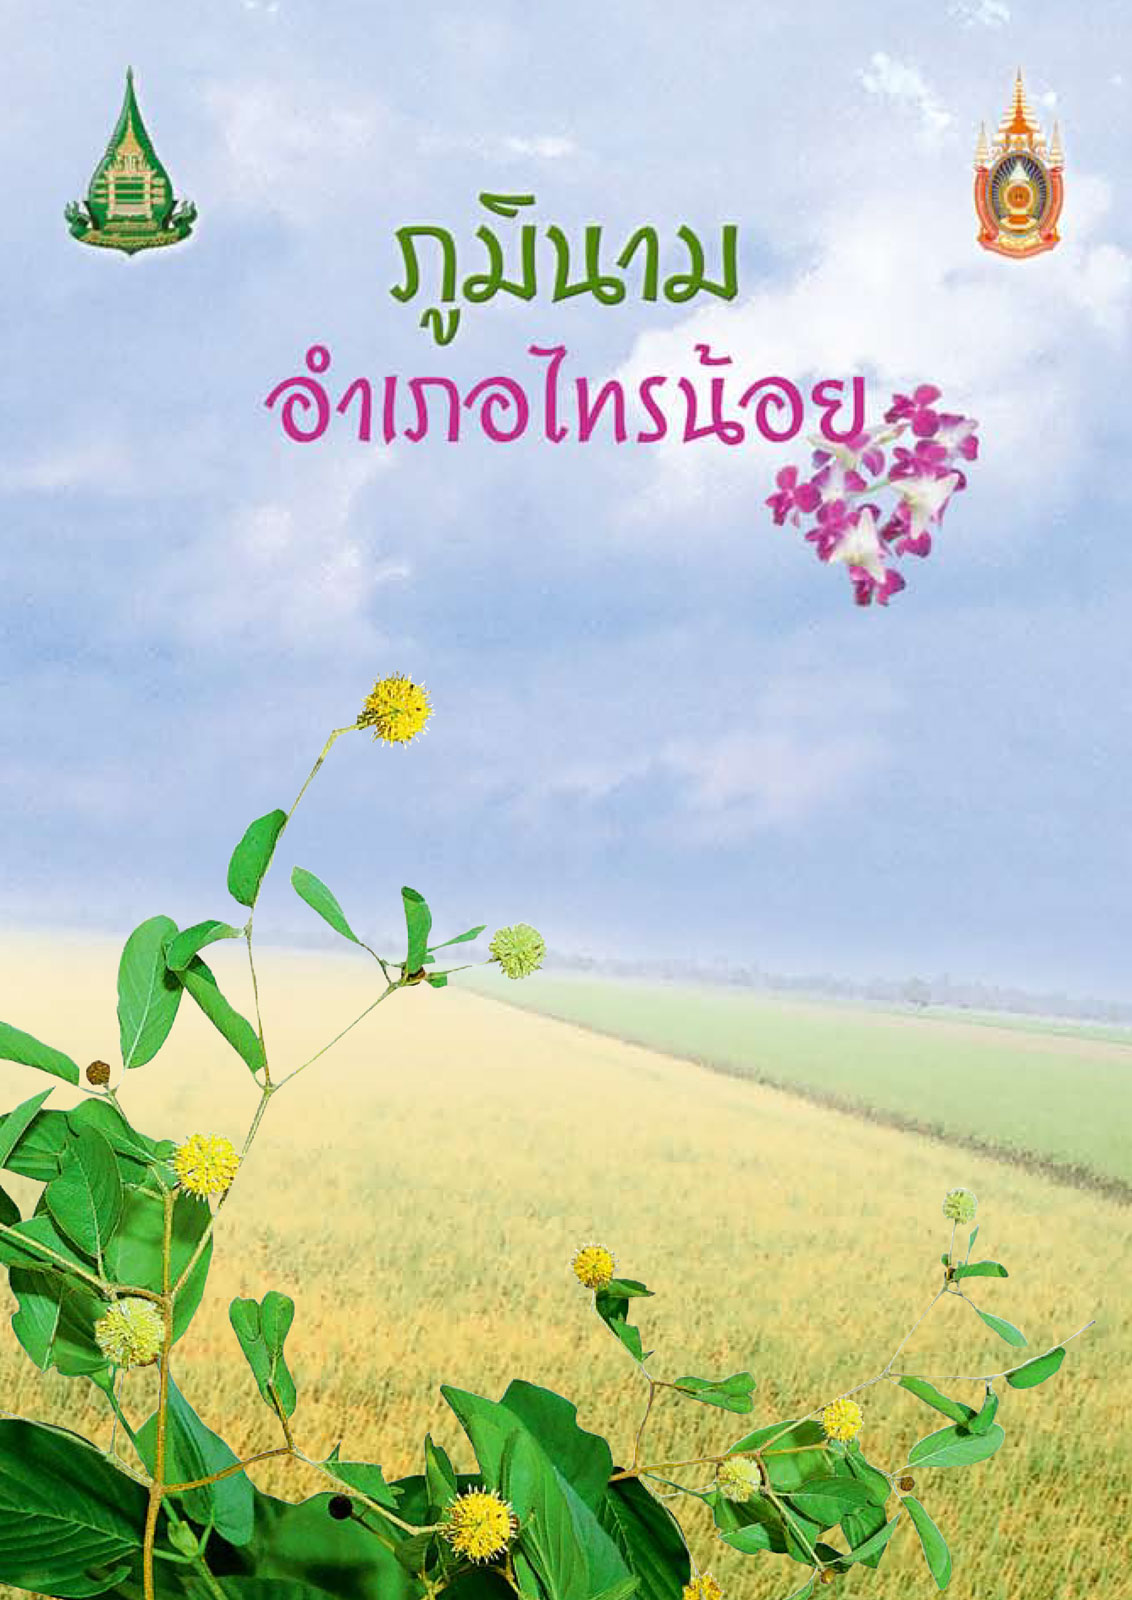 place-name-of-sai-noi-cover